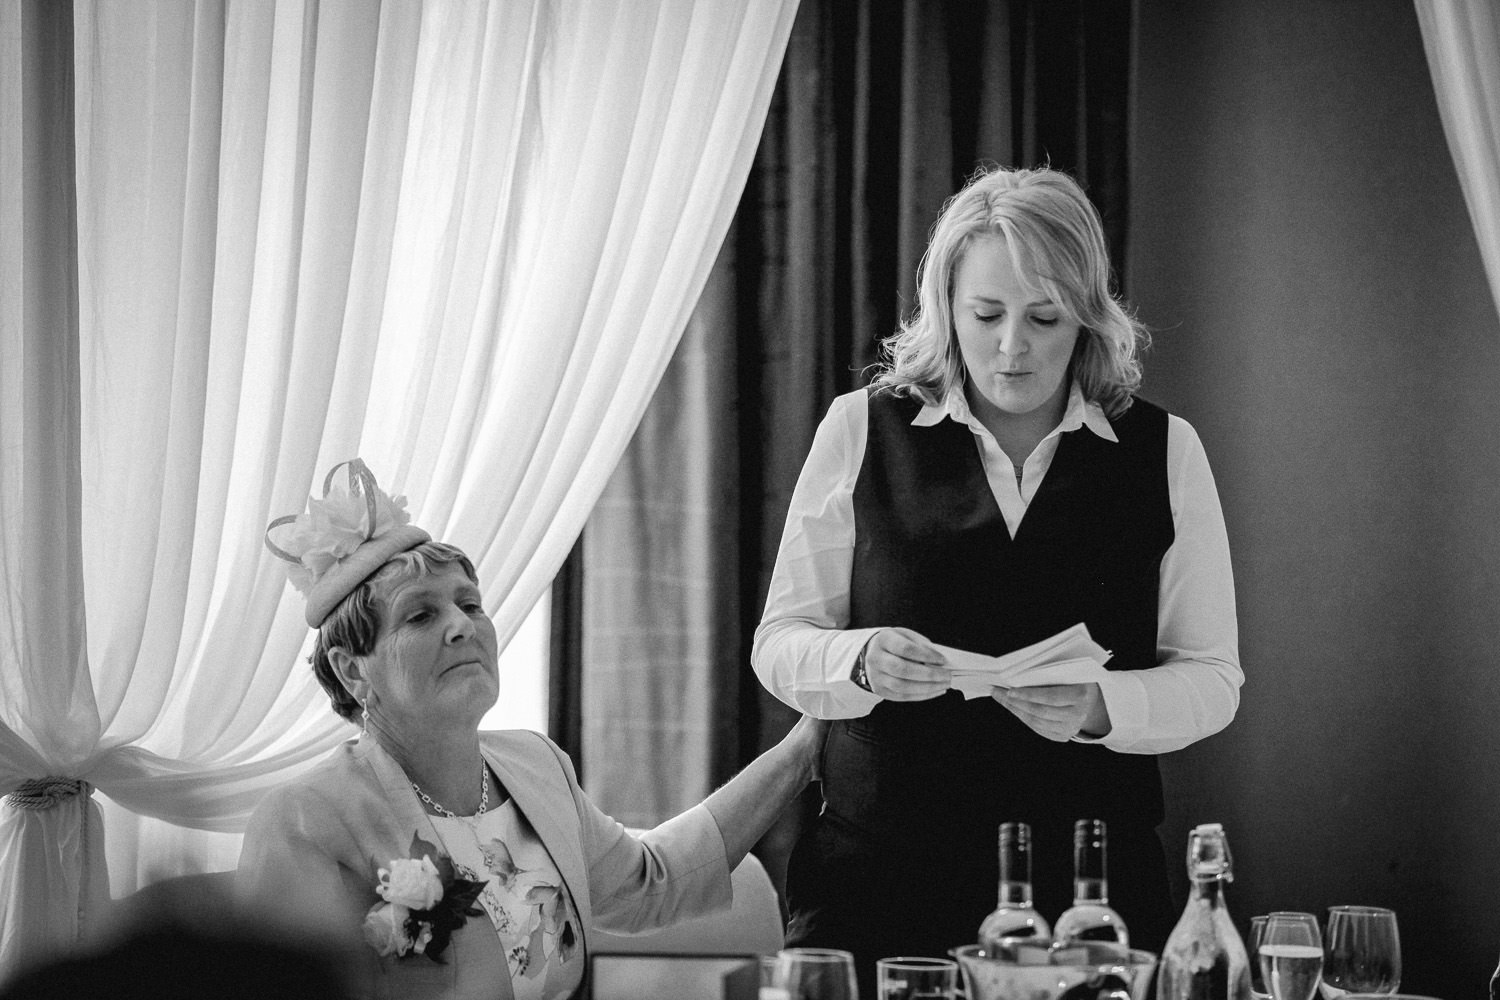 Hilton Liverpool wedding reception black and white photo of speeches